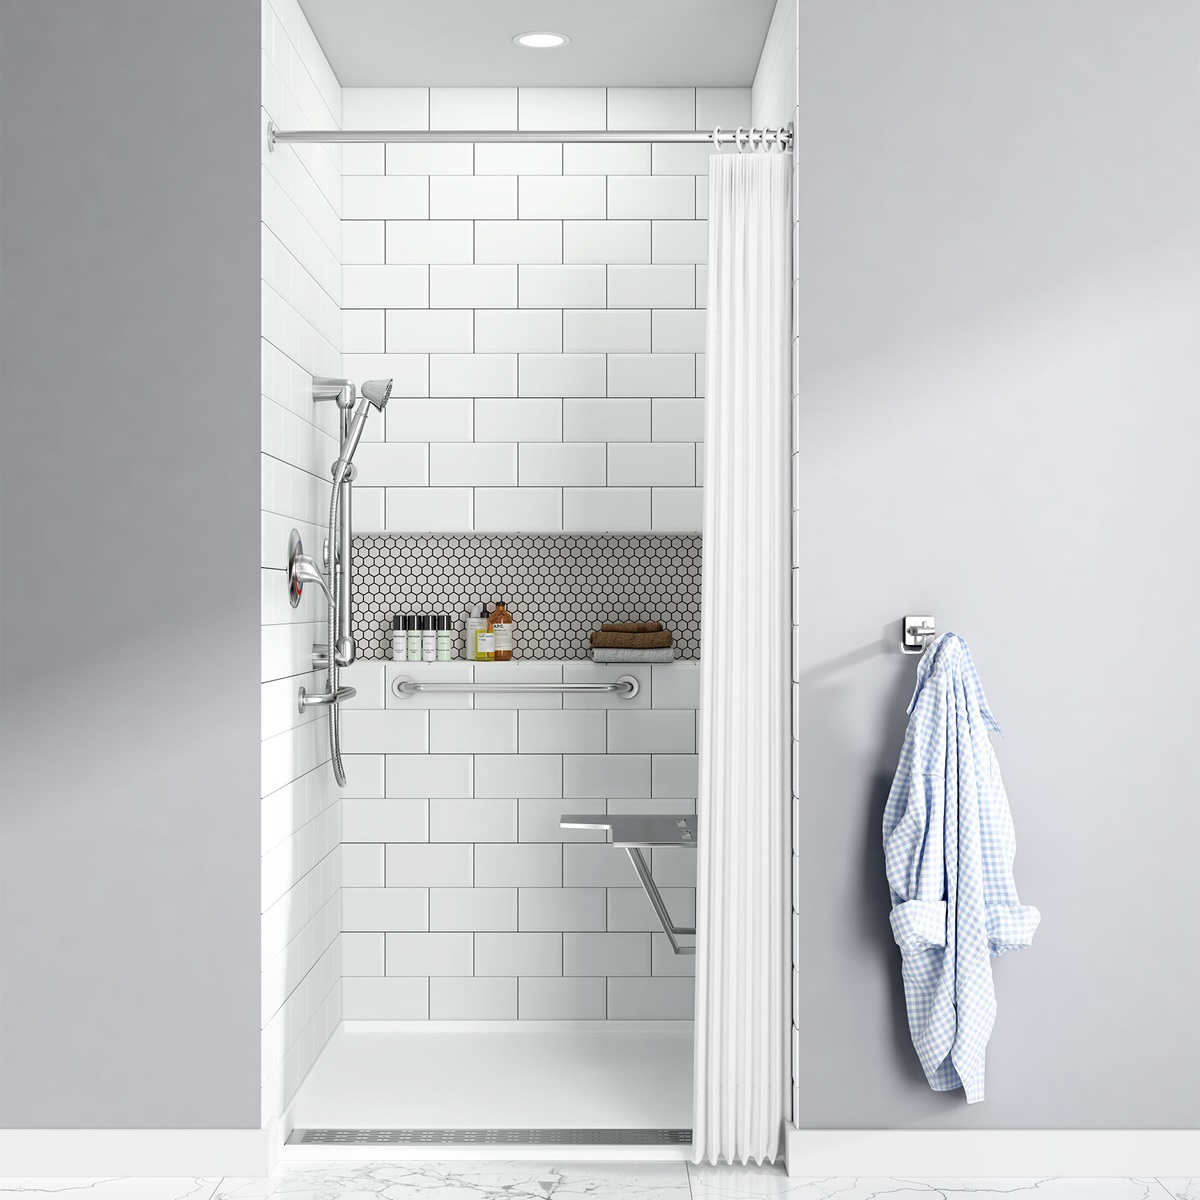 The Townsend 38×38 Inch Solid Surface Shower Base By American Standard Is A  Long Lasting, Durable Shower Base That Will Stay Looking Like New For Years  ...